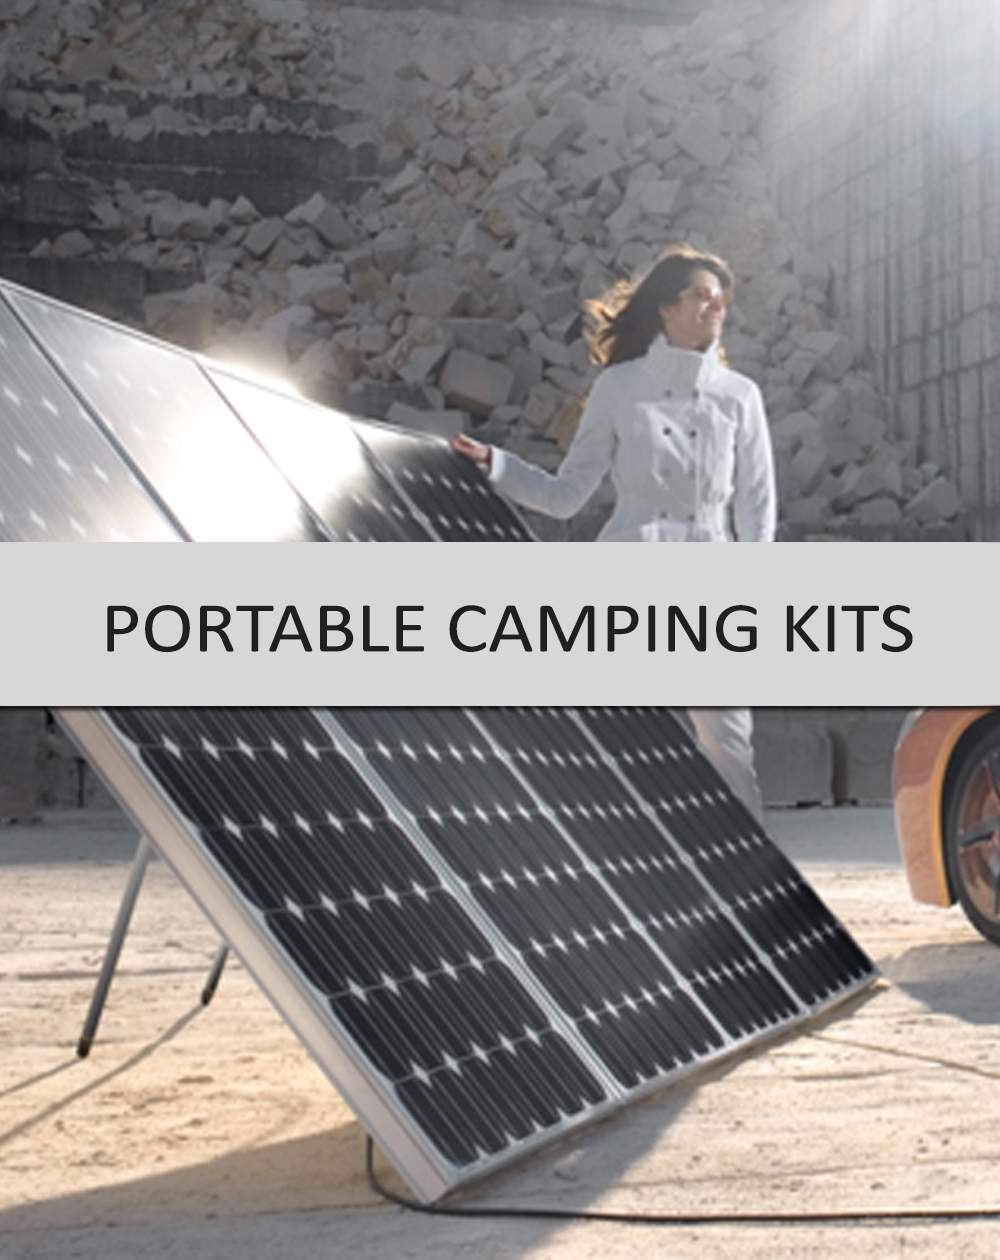 Relax in the shade while your foldable solar panel camping kit sits in the sun to charge your batteries! The portable solar panel for camping is a perfect starter system for weekend excursions in an caravan or 4 x 4 or for using as a backup or emergency power source. When you arrive at your camping destination, the portable folding solar panel kit set up process takes less than 4 minutes.